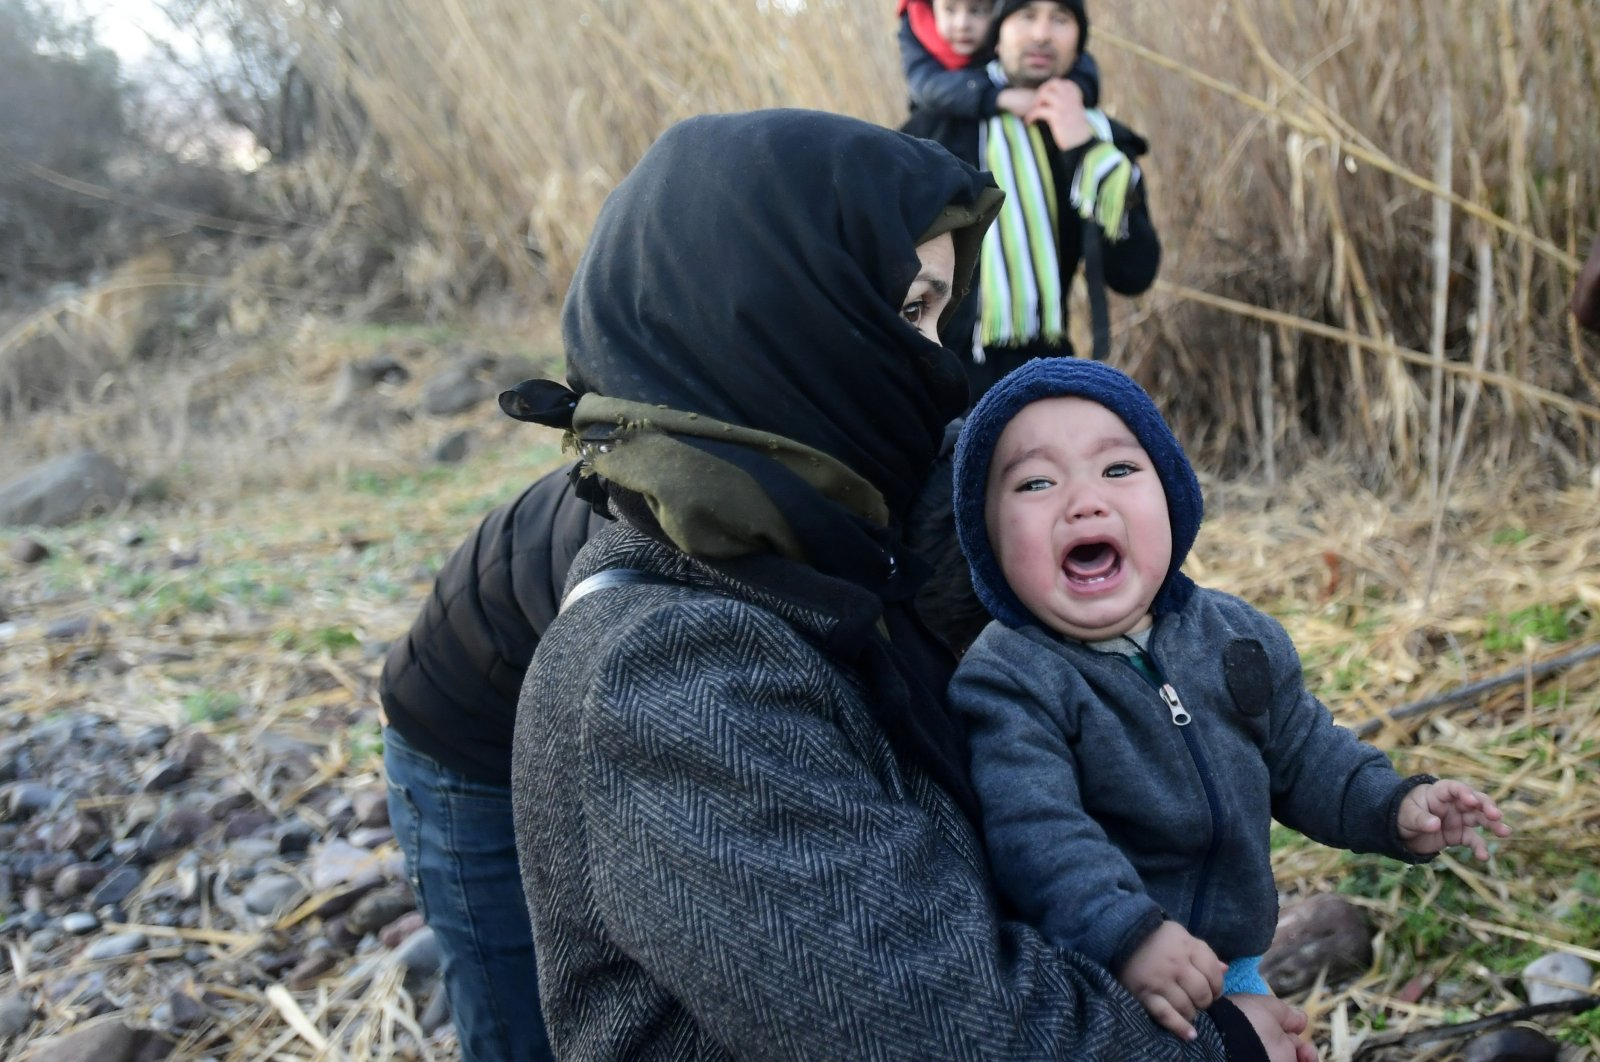 A baby cries as migrants arrive at the village of Skala Sikaminias, on the Greek island of Lesbos, after crossing on a dinghy the Aegean sea from Turkey, March 2, 2020. (AP Photo)